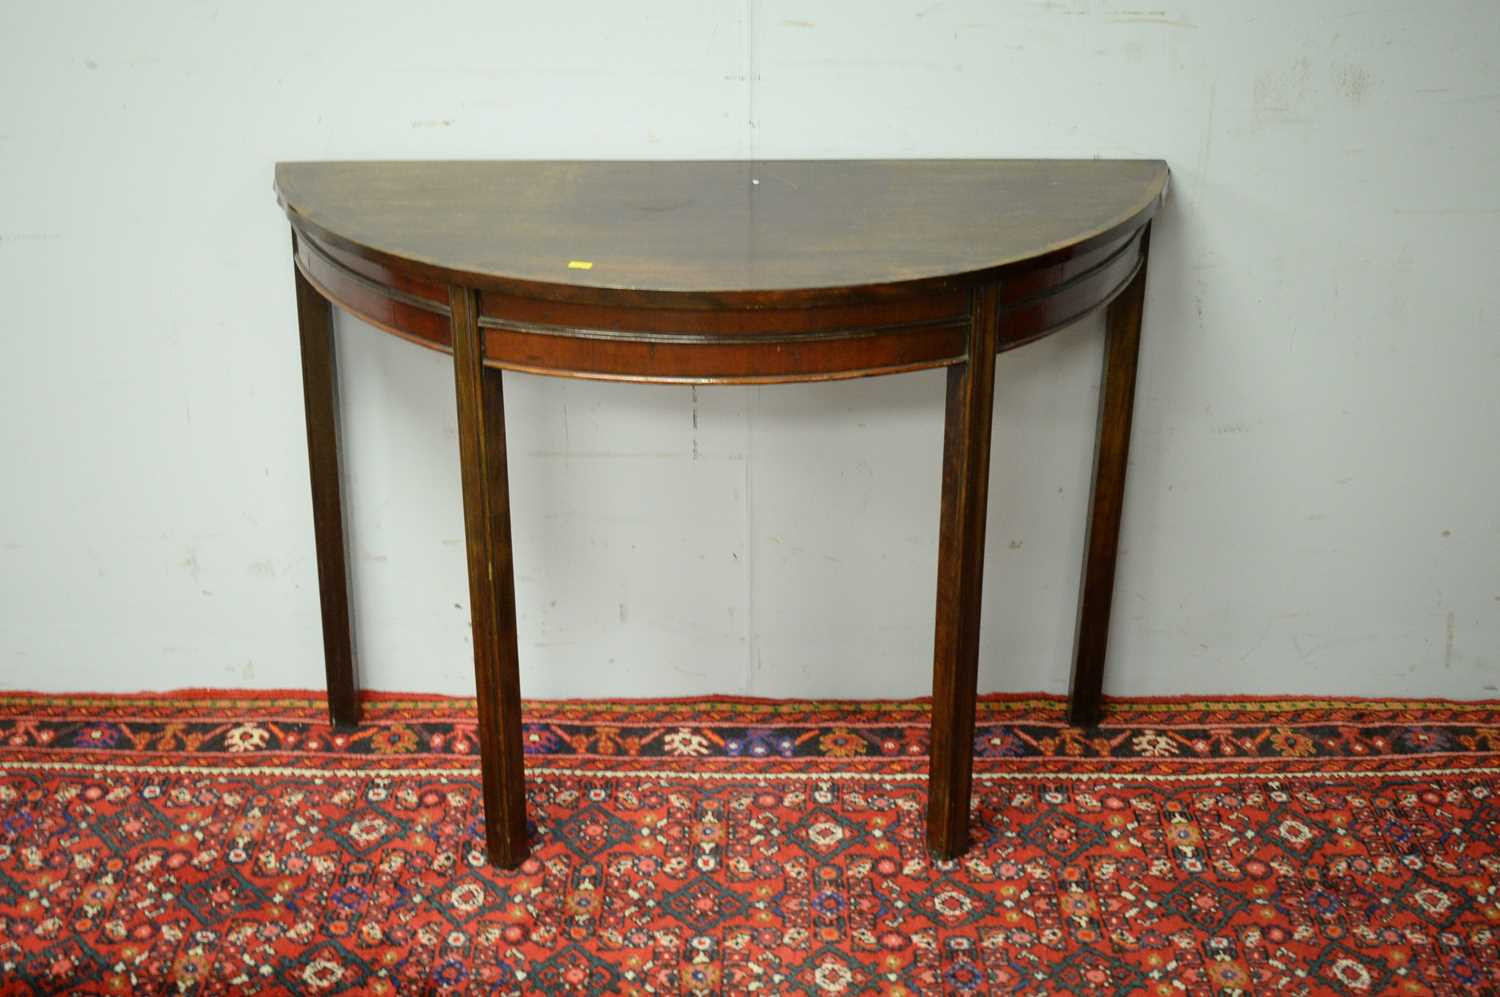 19th C mahogany demi lune side table. - Image 2 of 3